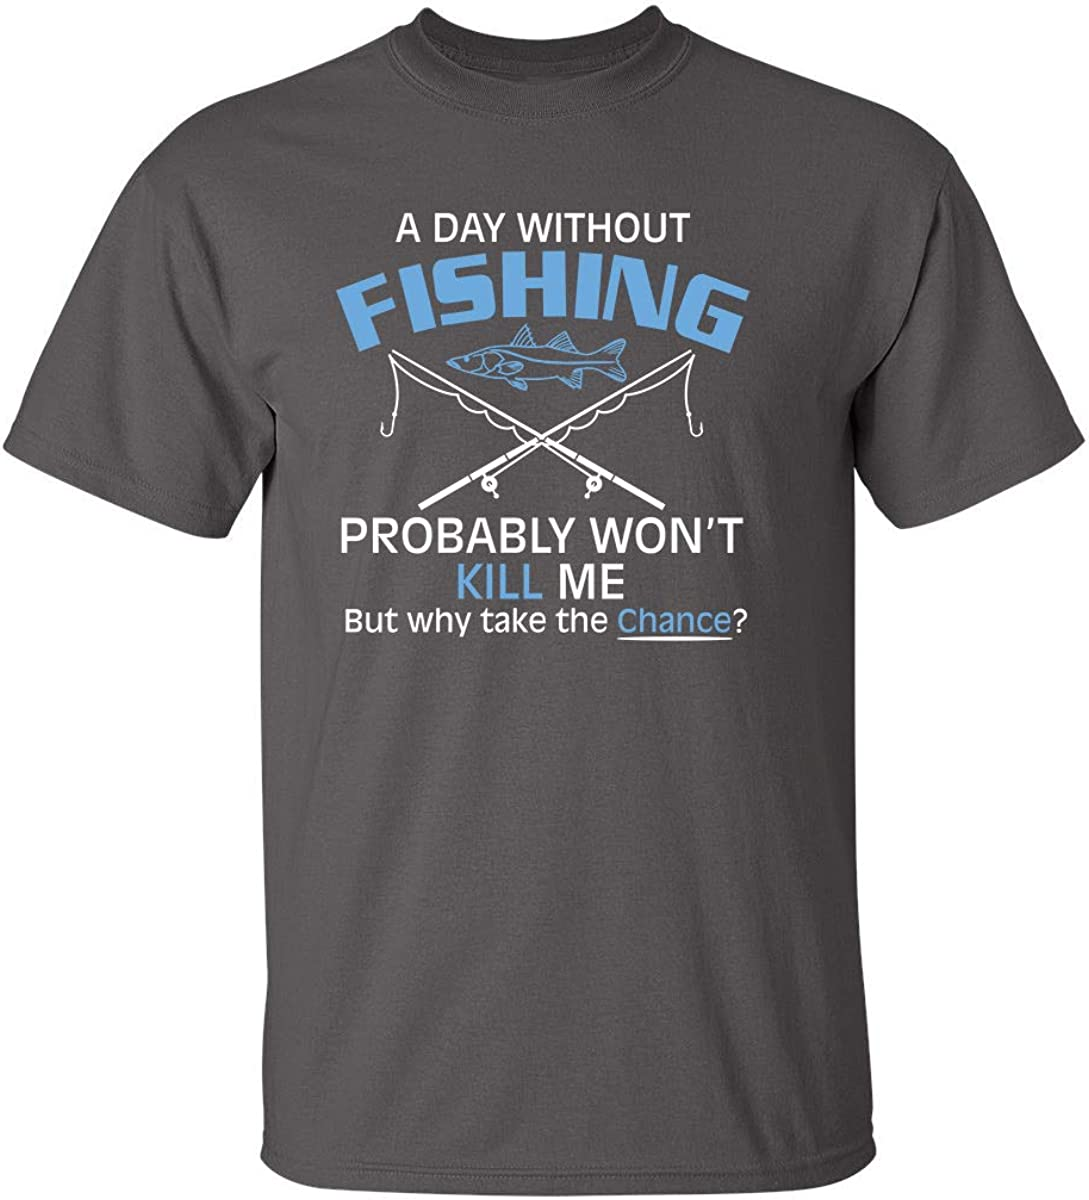 A Day Without Fishing Probably Won't Kill Me Gift Idea to Dad Funny T Shirt